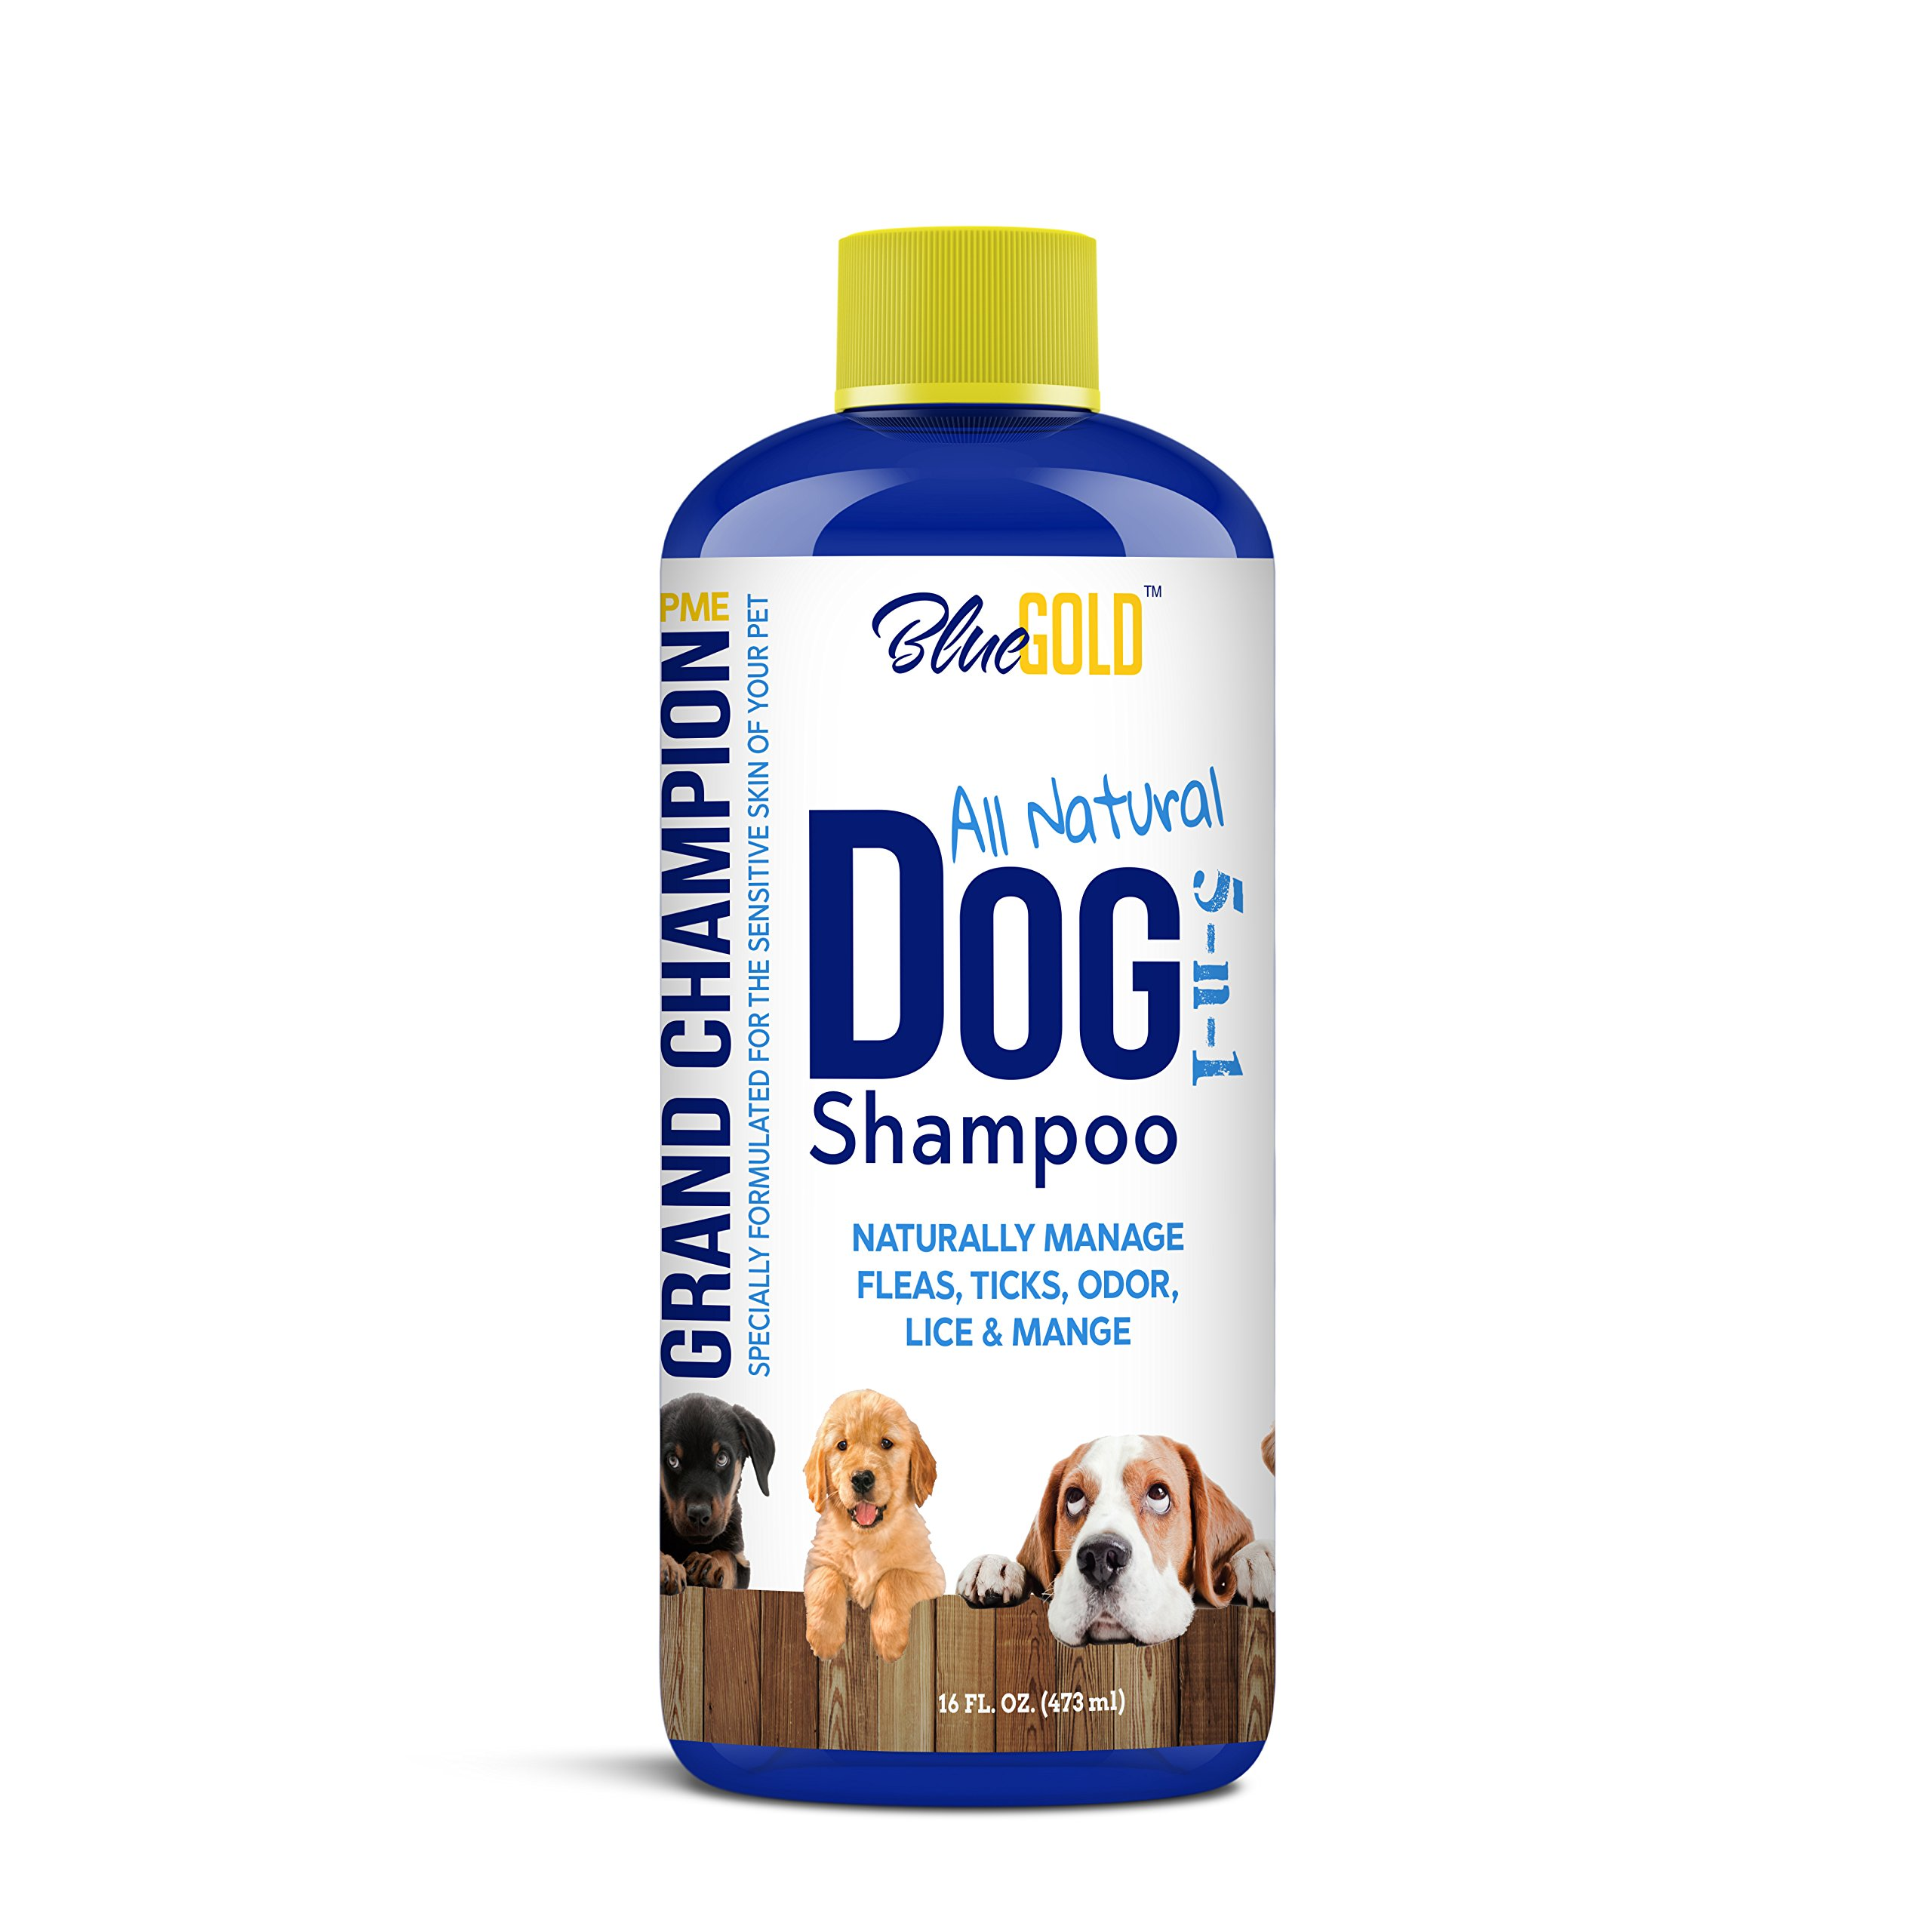 Blue Gold All Natural Dog Shampoo Puppy Shampoo. Deodorizing Antibacterial Anti-Fungal Dog Shampoo for Itchy Dog Skin, Dog Allergies, Dog Dandruff, Dog Shedding, Dog Mites Fleas Ticks Lice Mange. by Blue Gold